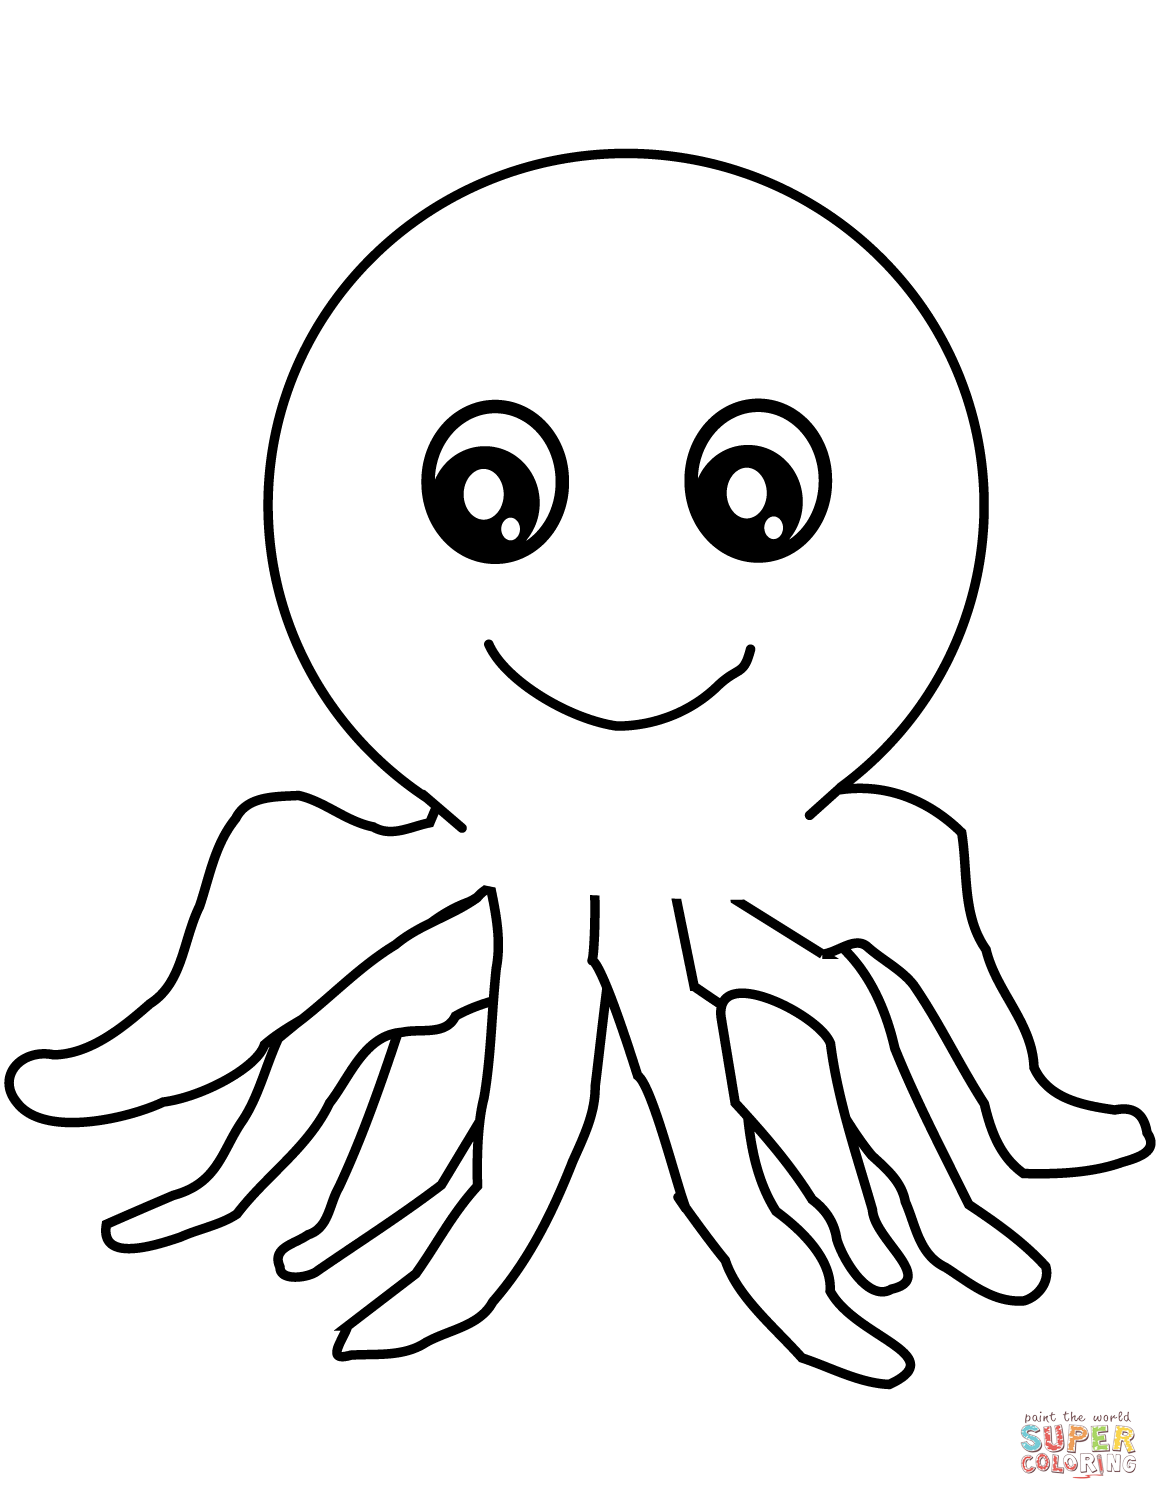 Octopus Coloring Pages Free Coloring Pages